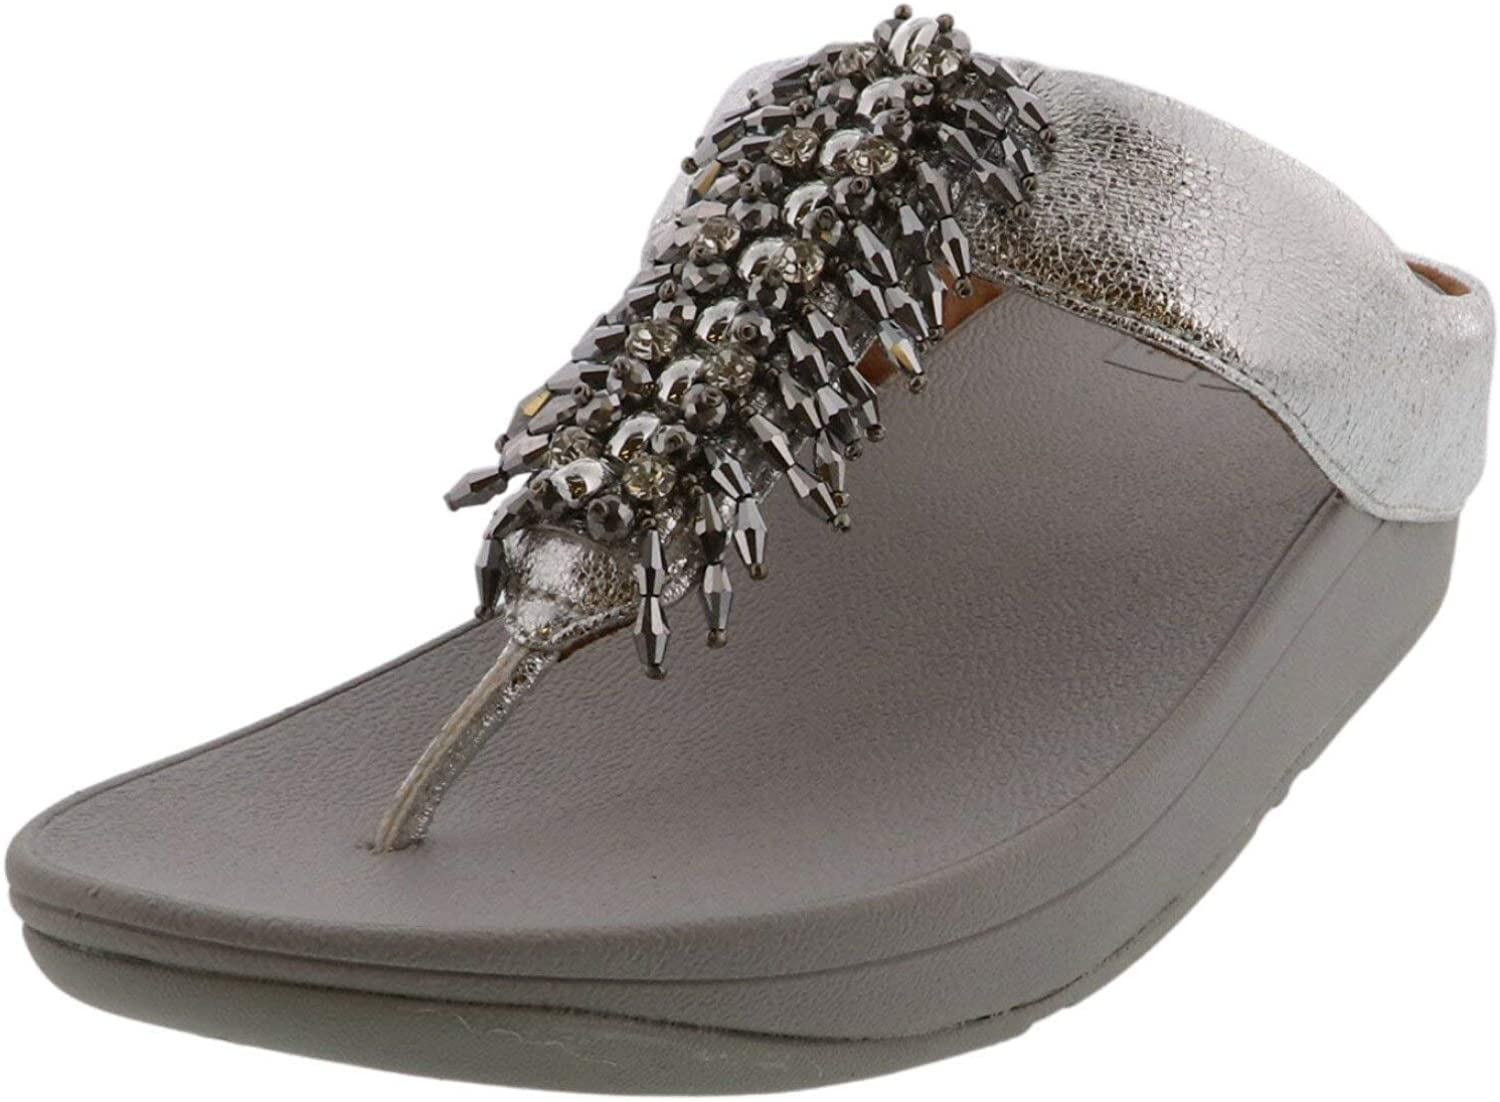 Sales Japan's largest assortment results No. 1 FitFlop Women's Flip-Flop Toe-Thongs